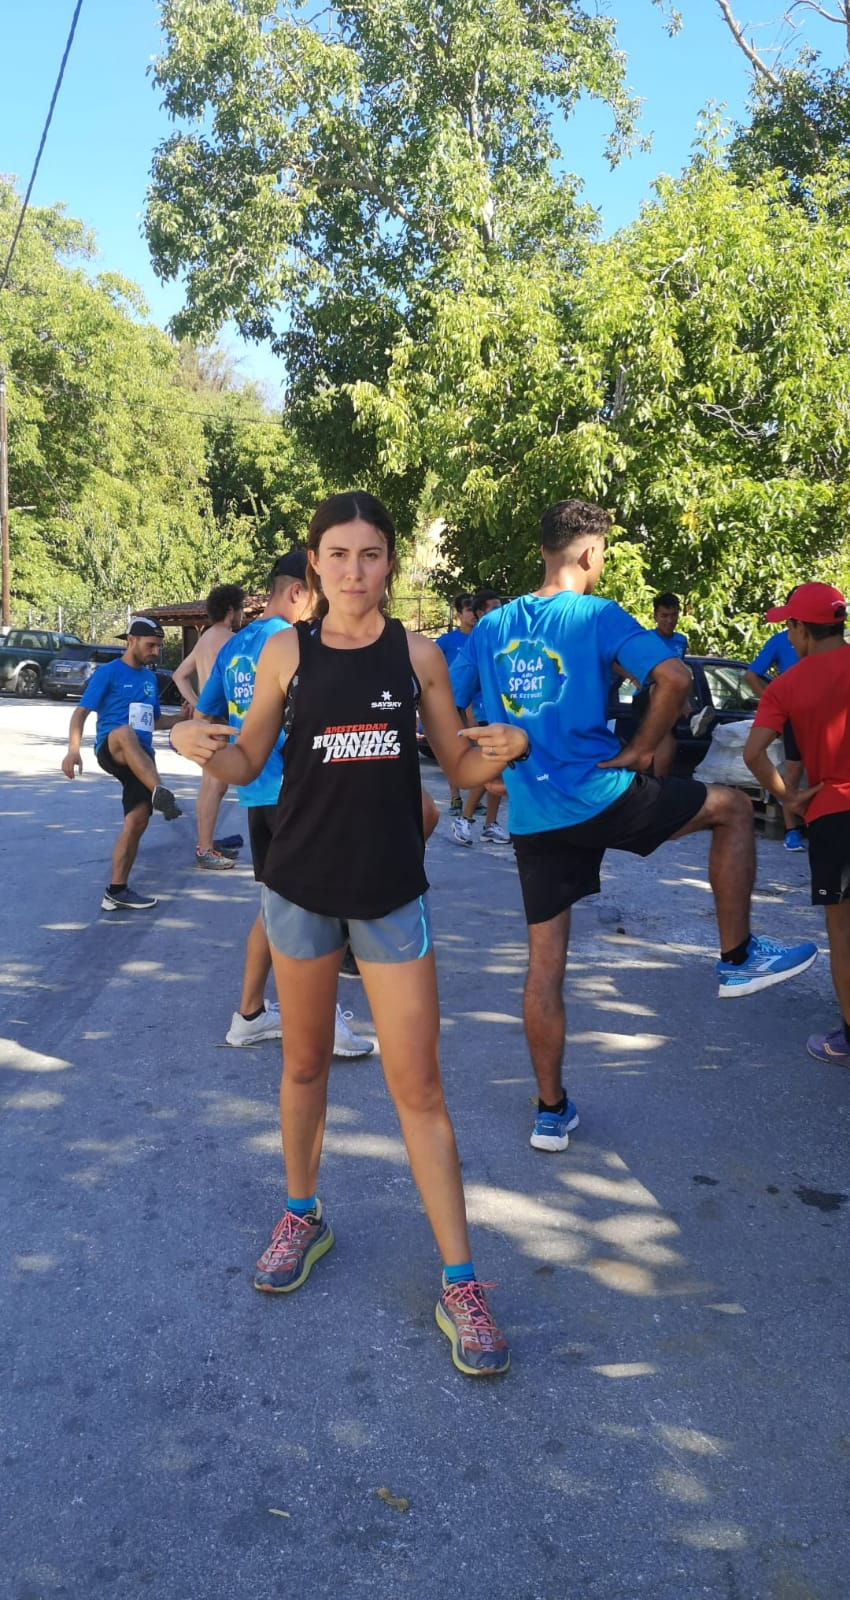 Estelle, founder of Yoga and Sport with Refugees